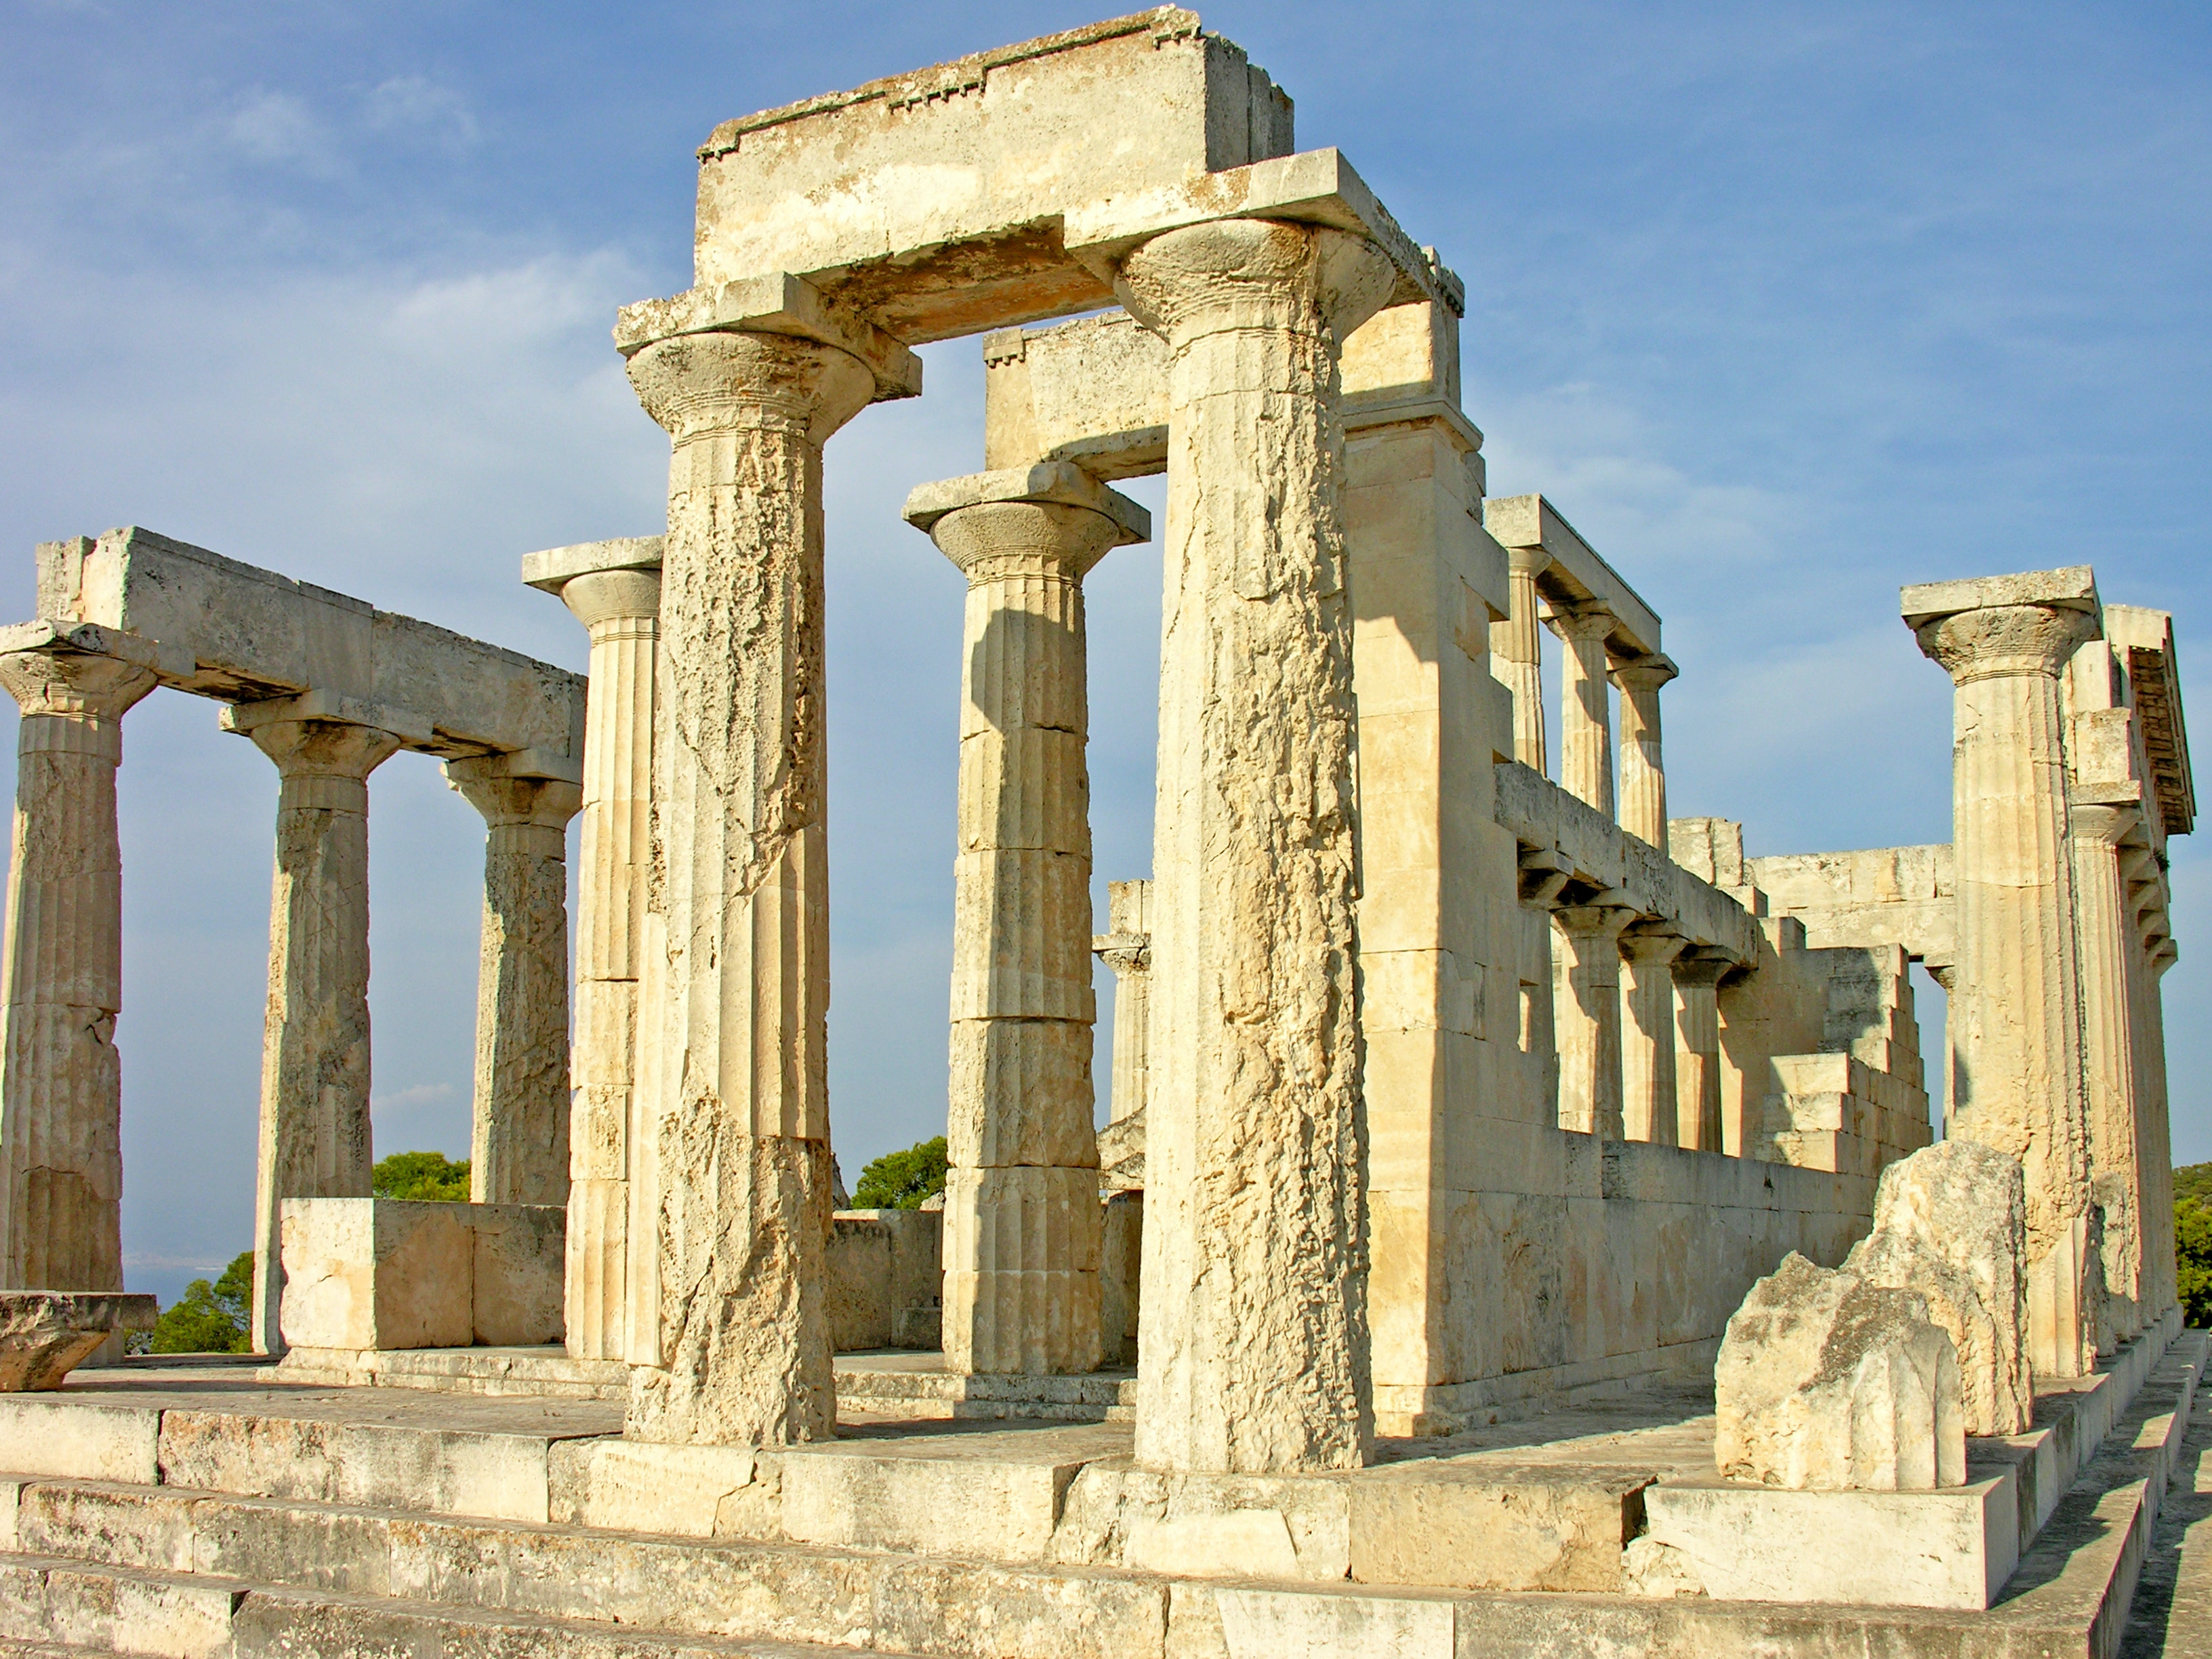 The Temple of Aphaia in Greece was built nearly 3,000 years ago.